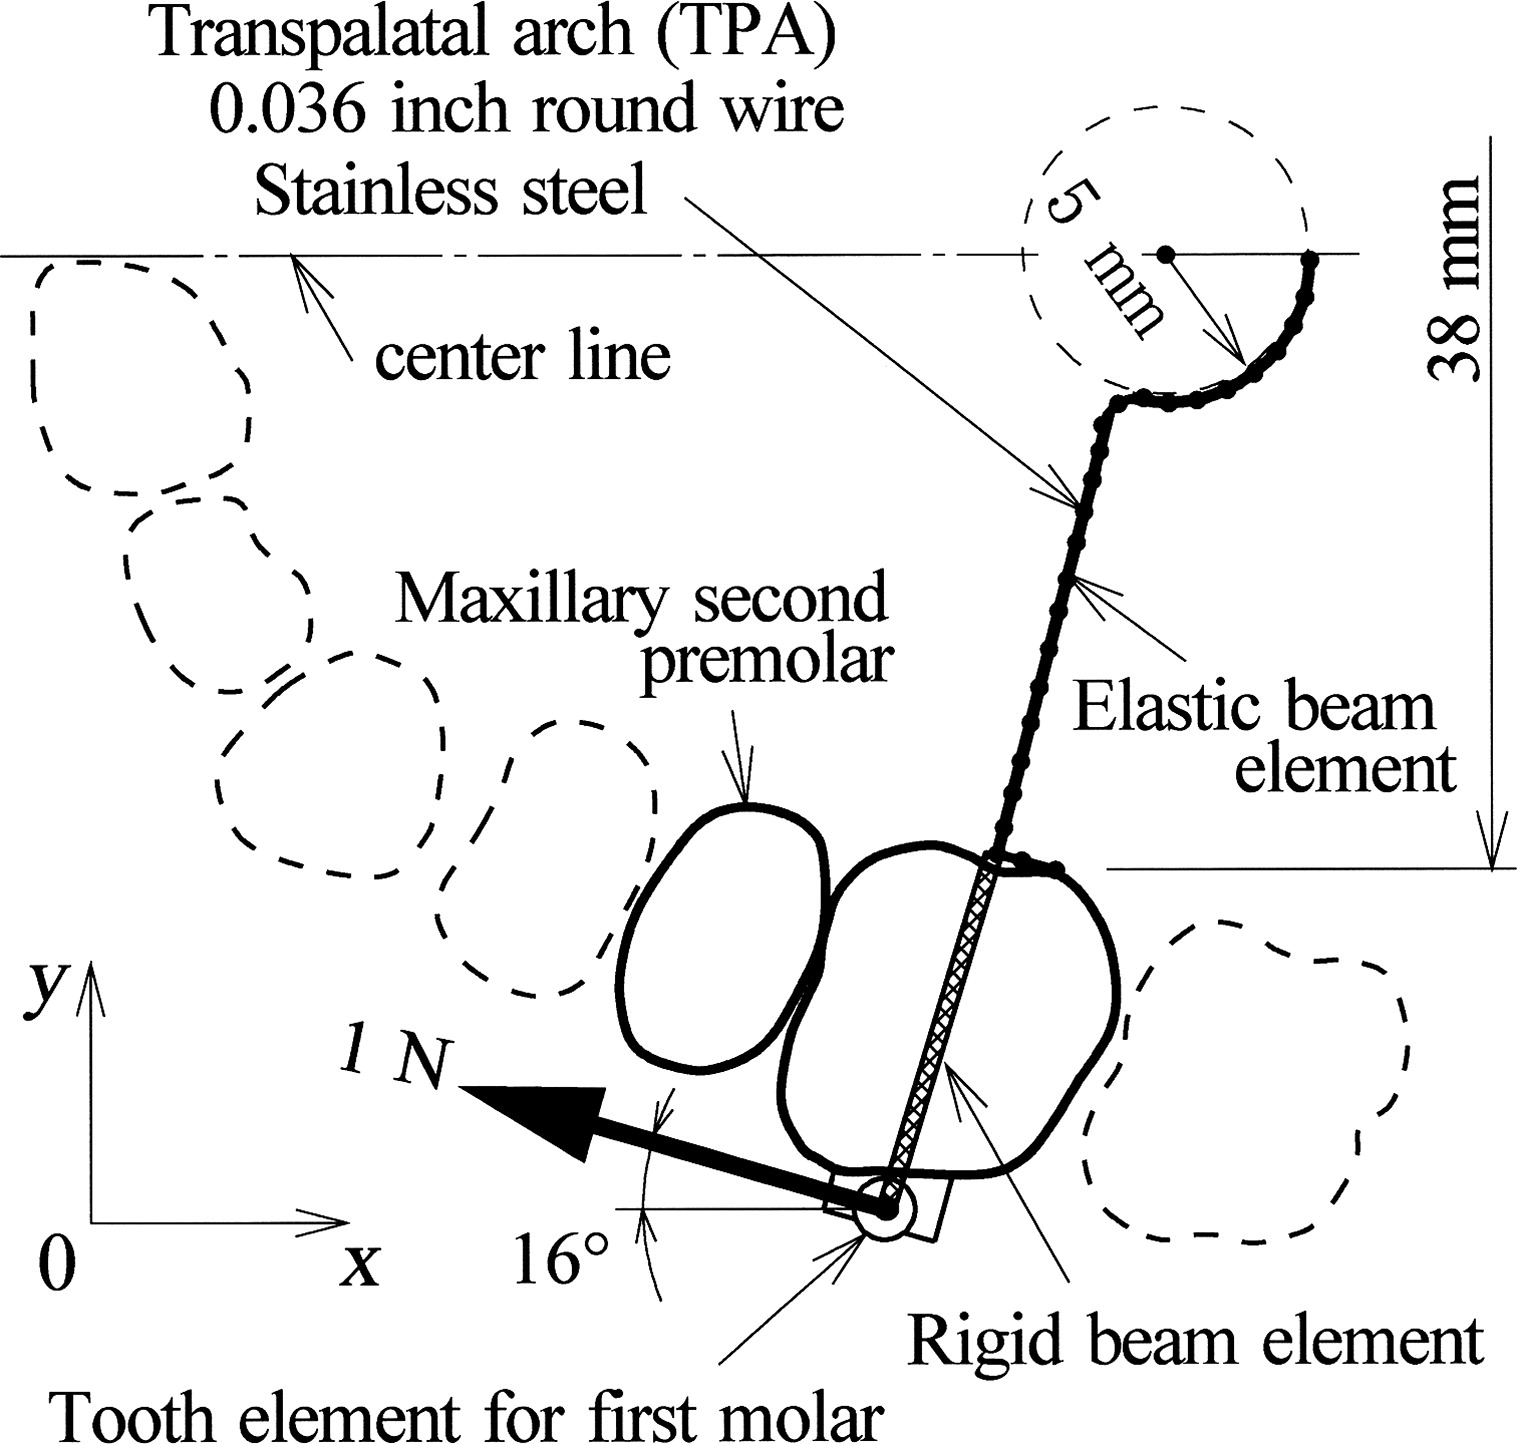 Effects of transpalatal arch on molar movement produced by